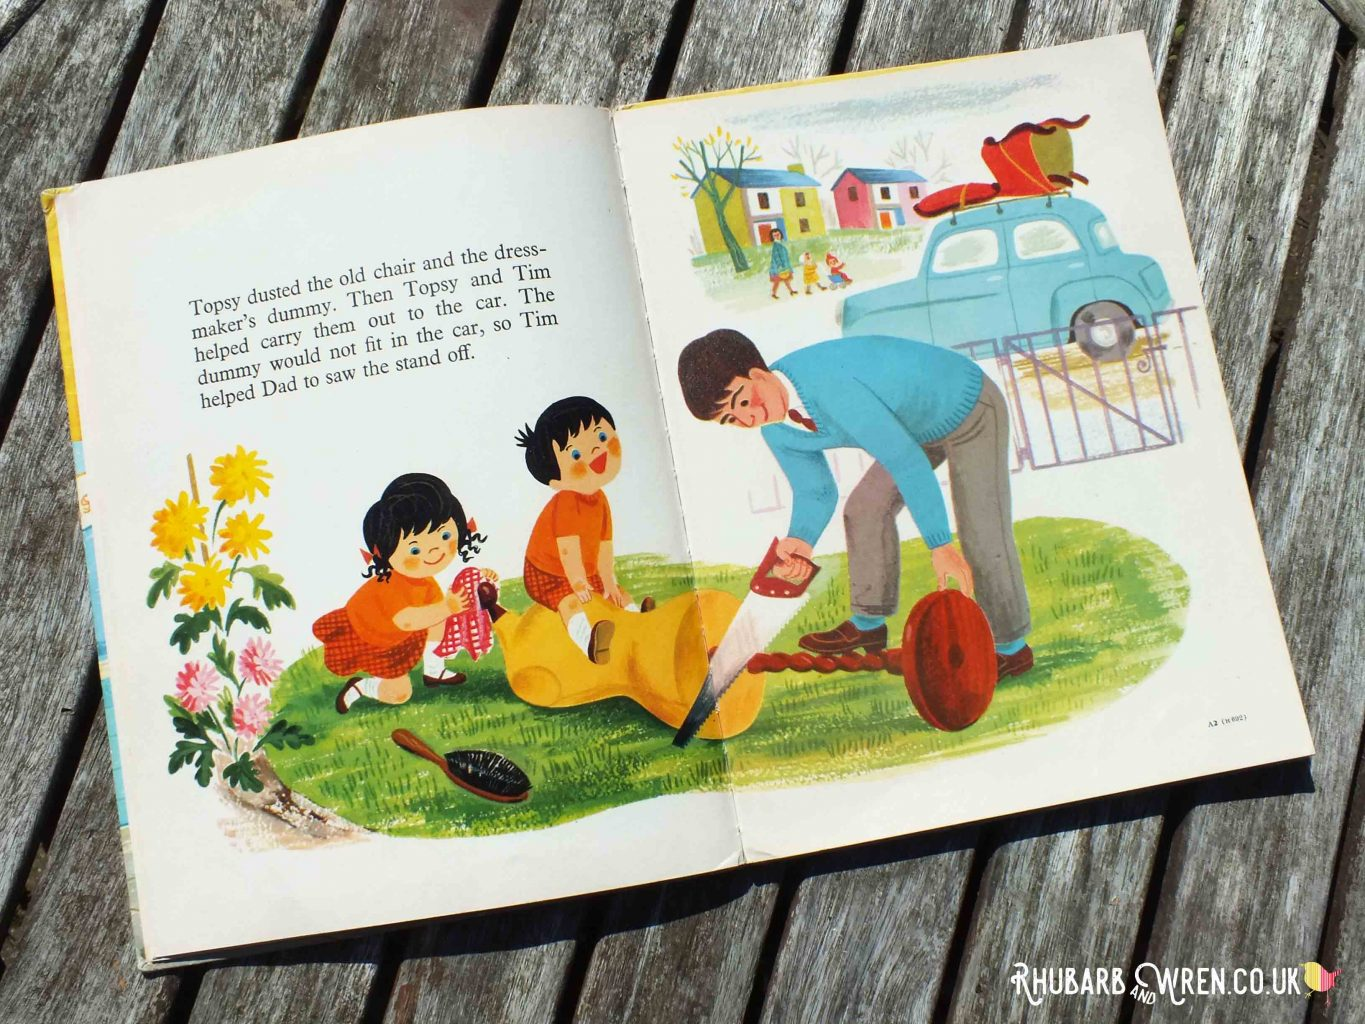 Double-page spread in Topsy and Tim's Bonfire Night, showing Dad sawing off off base of dressmaker's dummy while the twins watch.